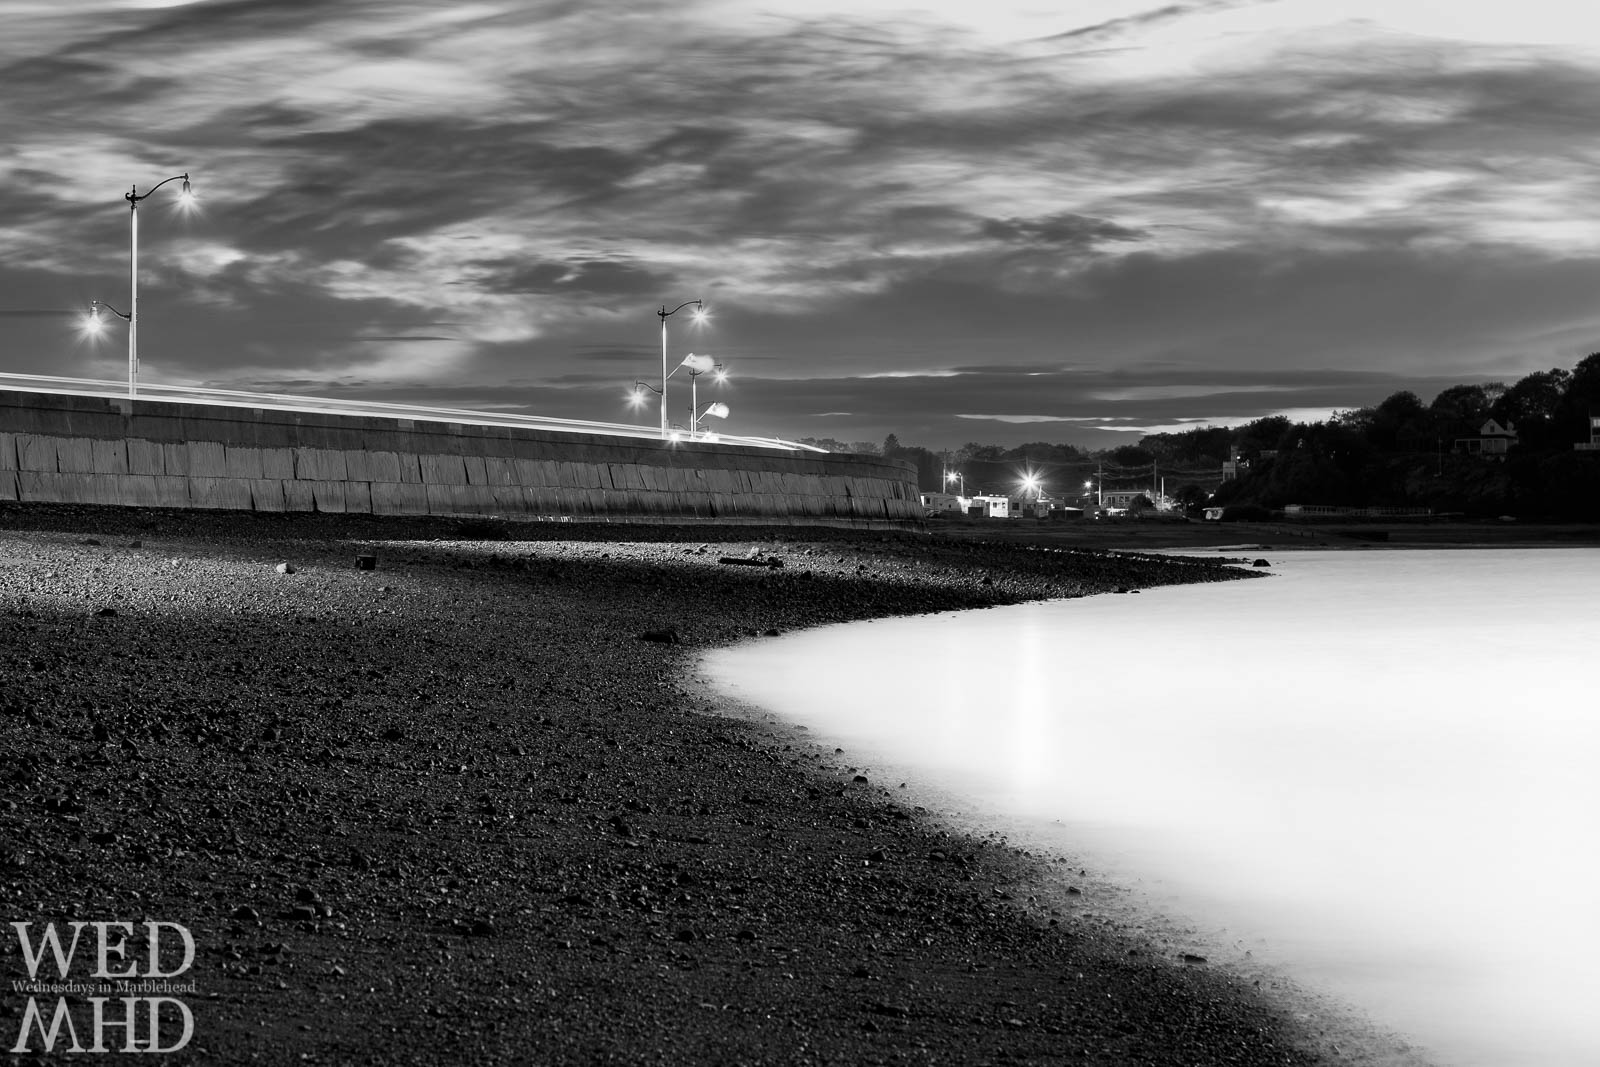 A black and white long exposure image transforms Riverhead Beach to dark stones and milky water with the lights of the causeway shining above